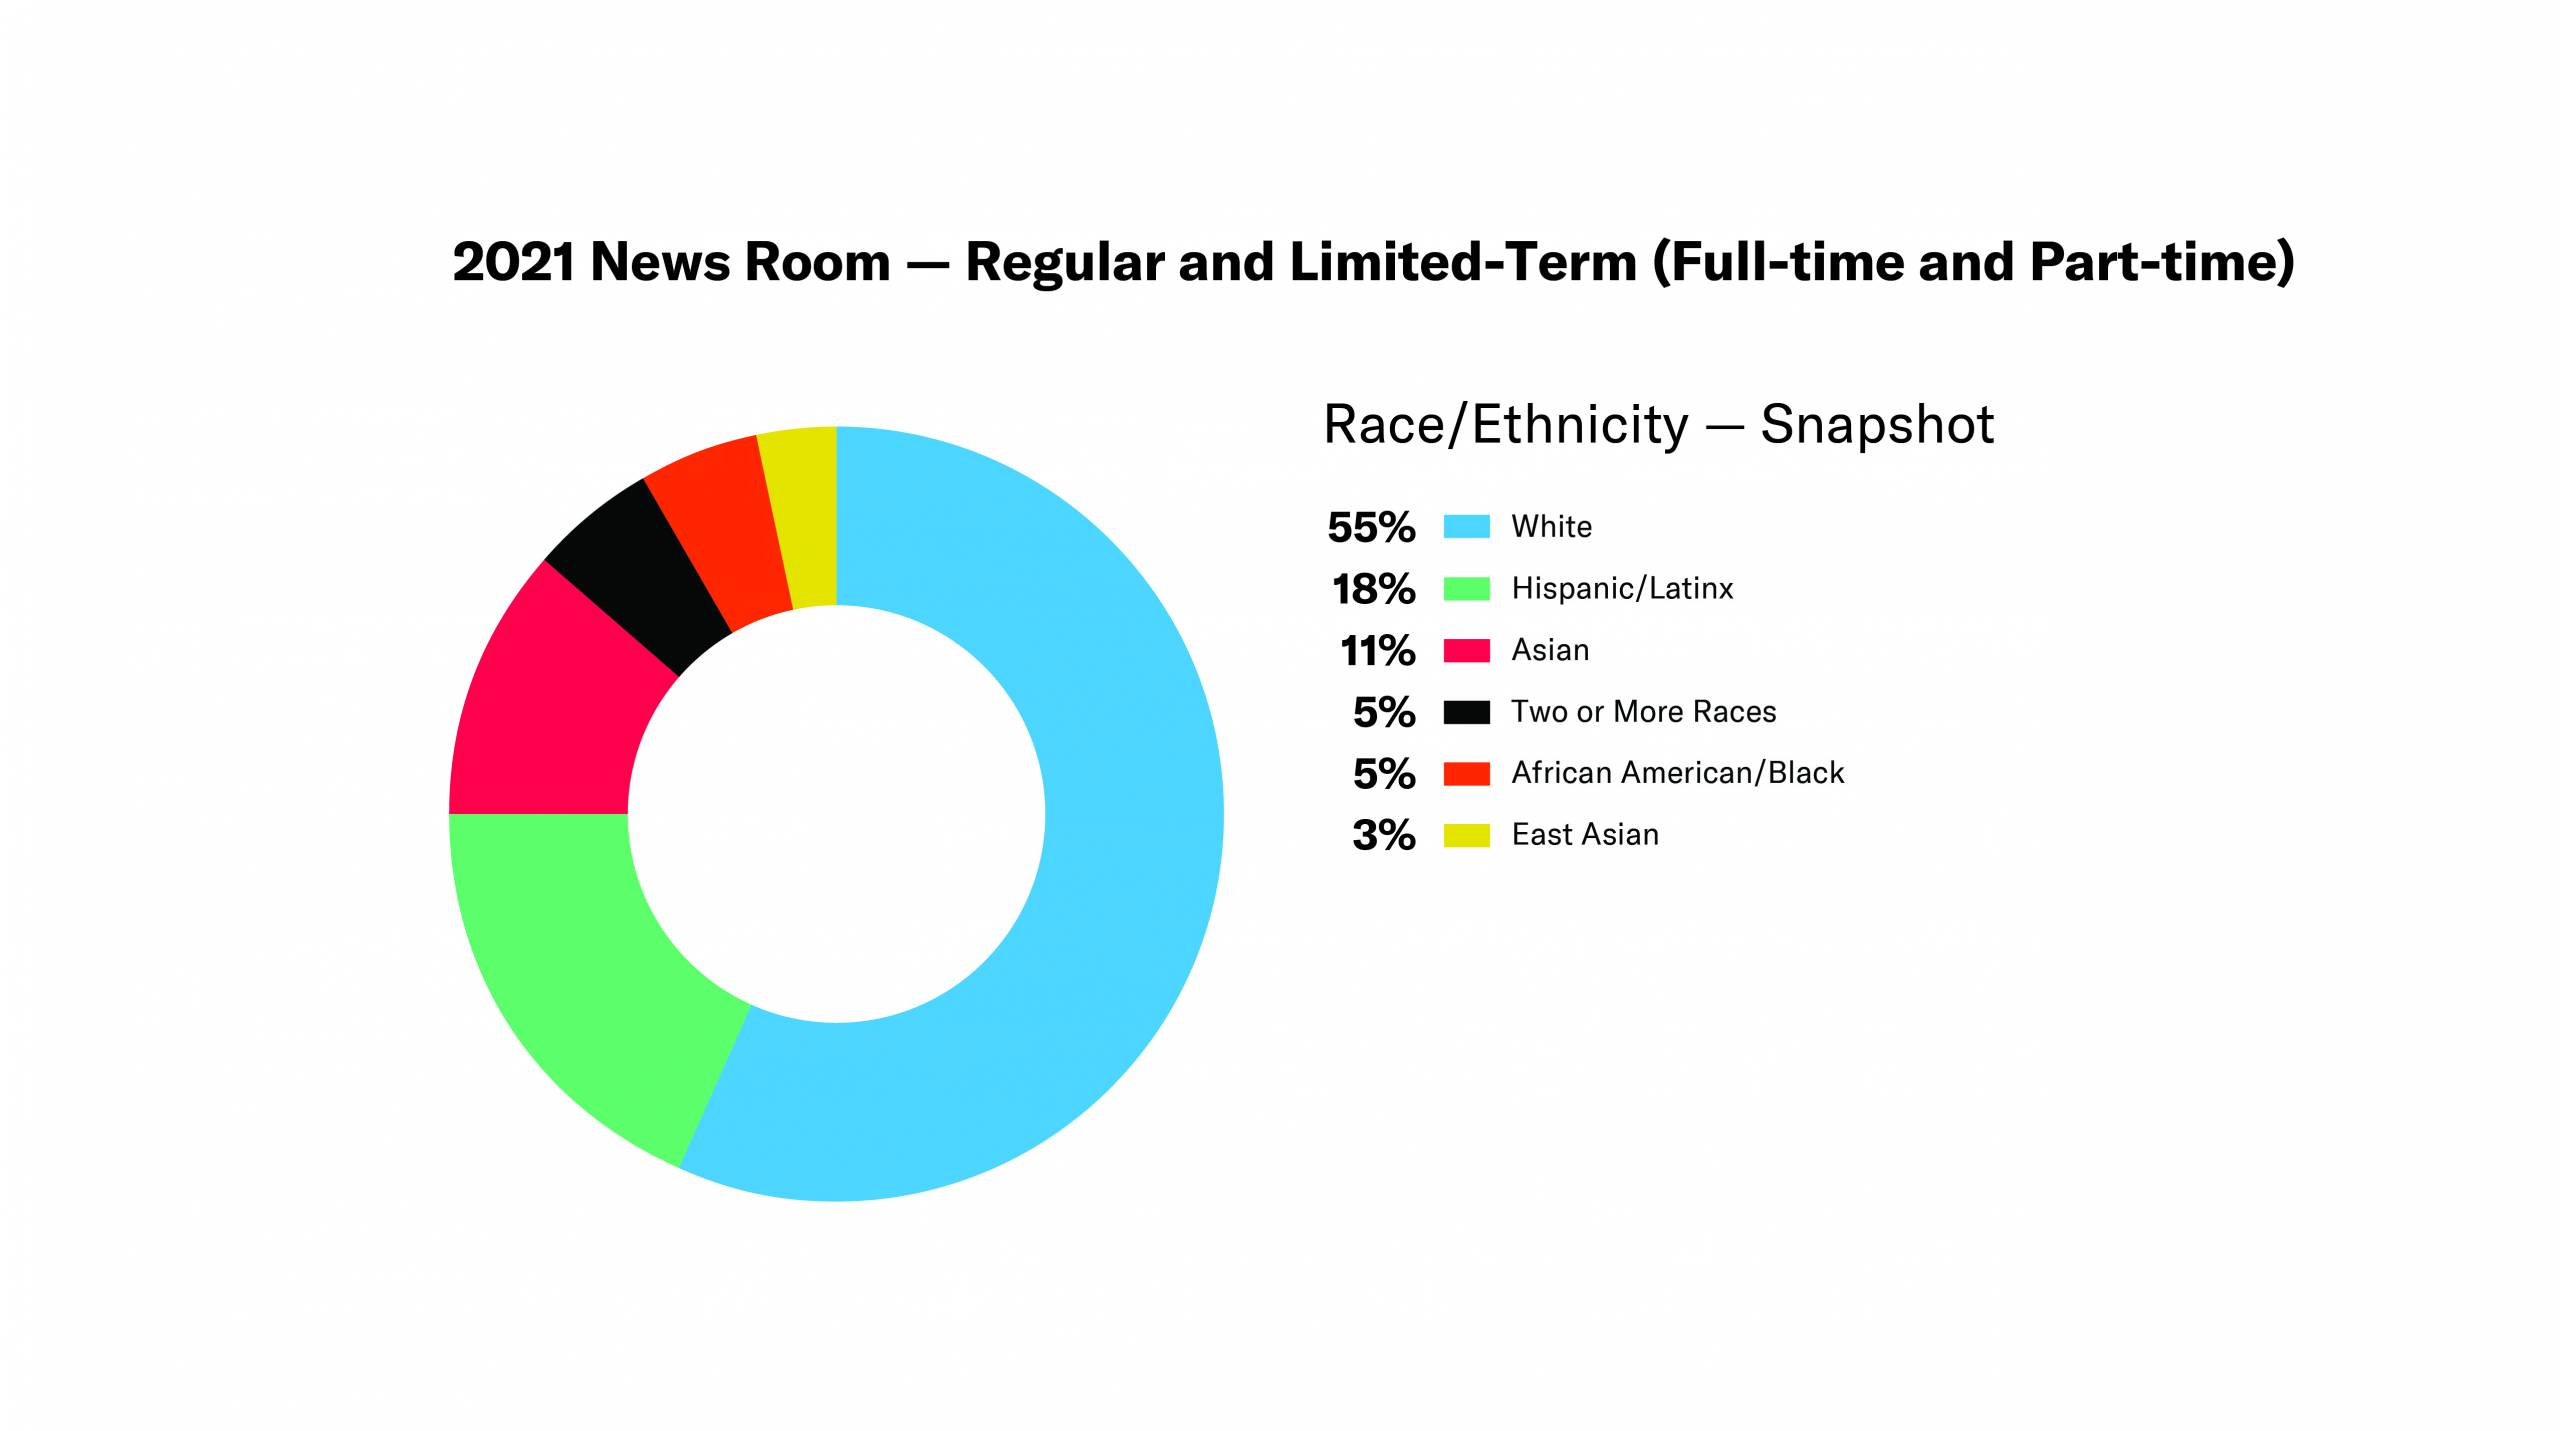 Donut Chart - 2021 News Room — Regular and Limited-Term (Full-time and Part-time) - Race/ethnicity snapshot